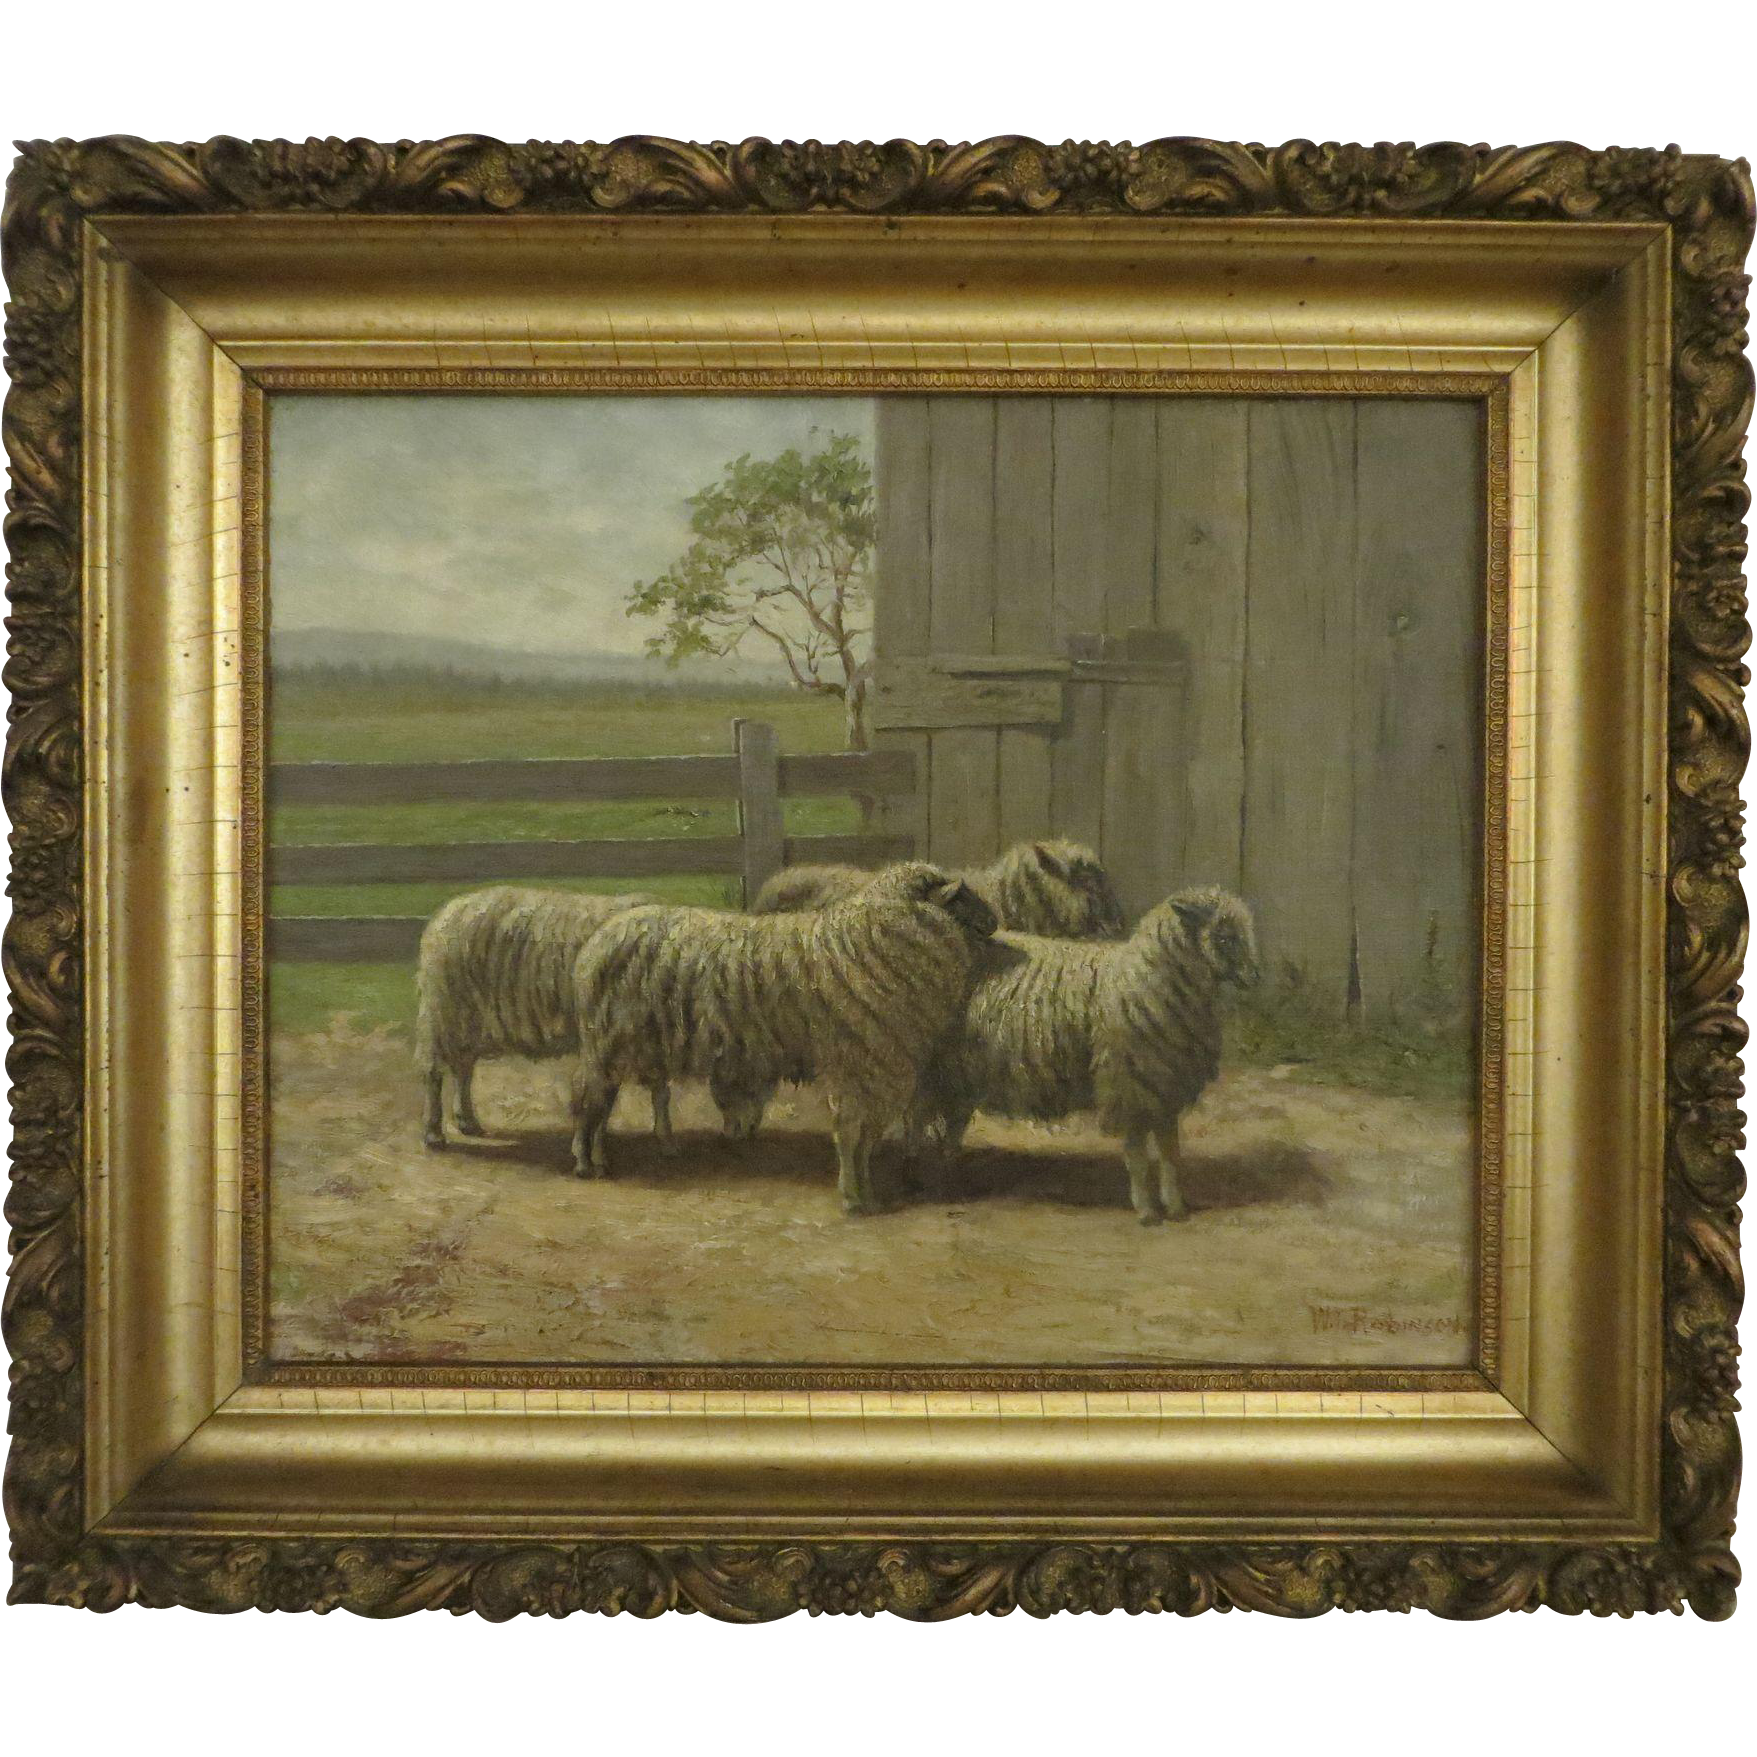 1890 Sheep Painting Signed W T Robinson From Capecodattic On Ruby